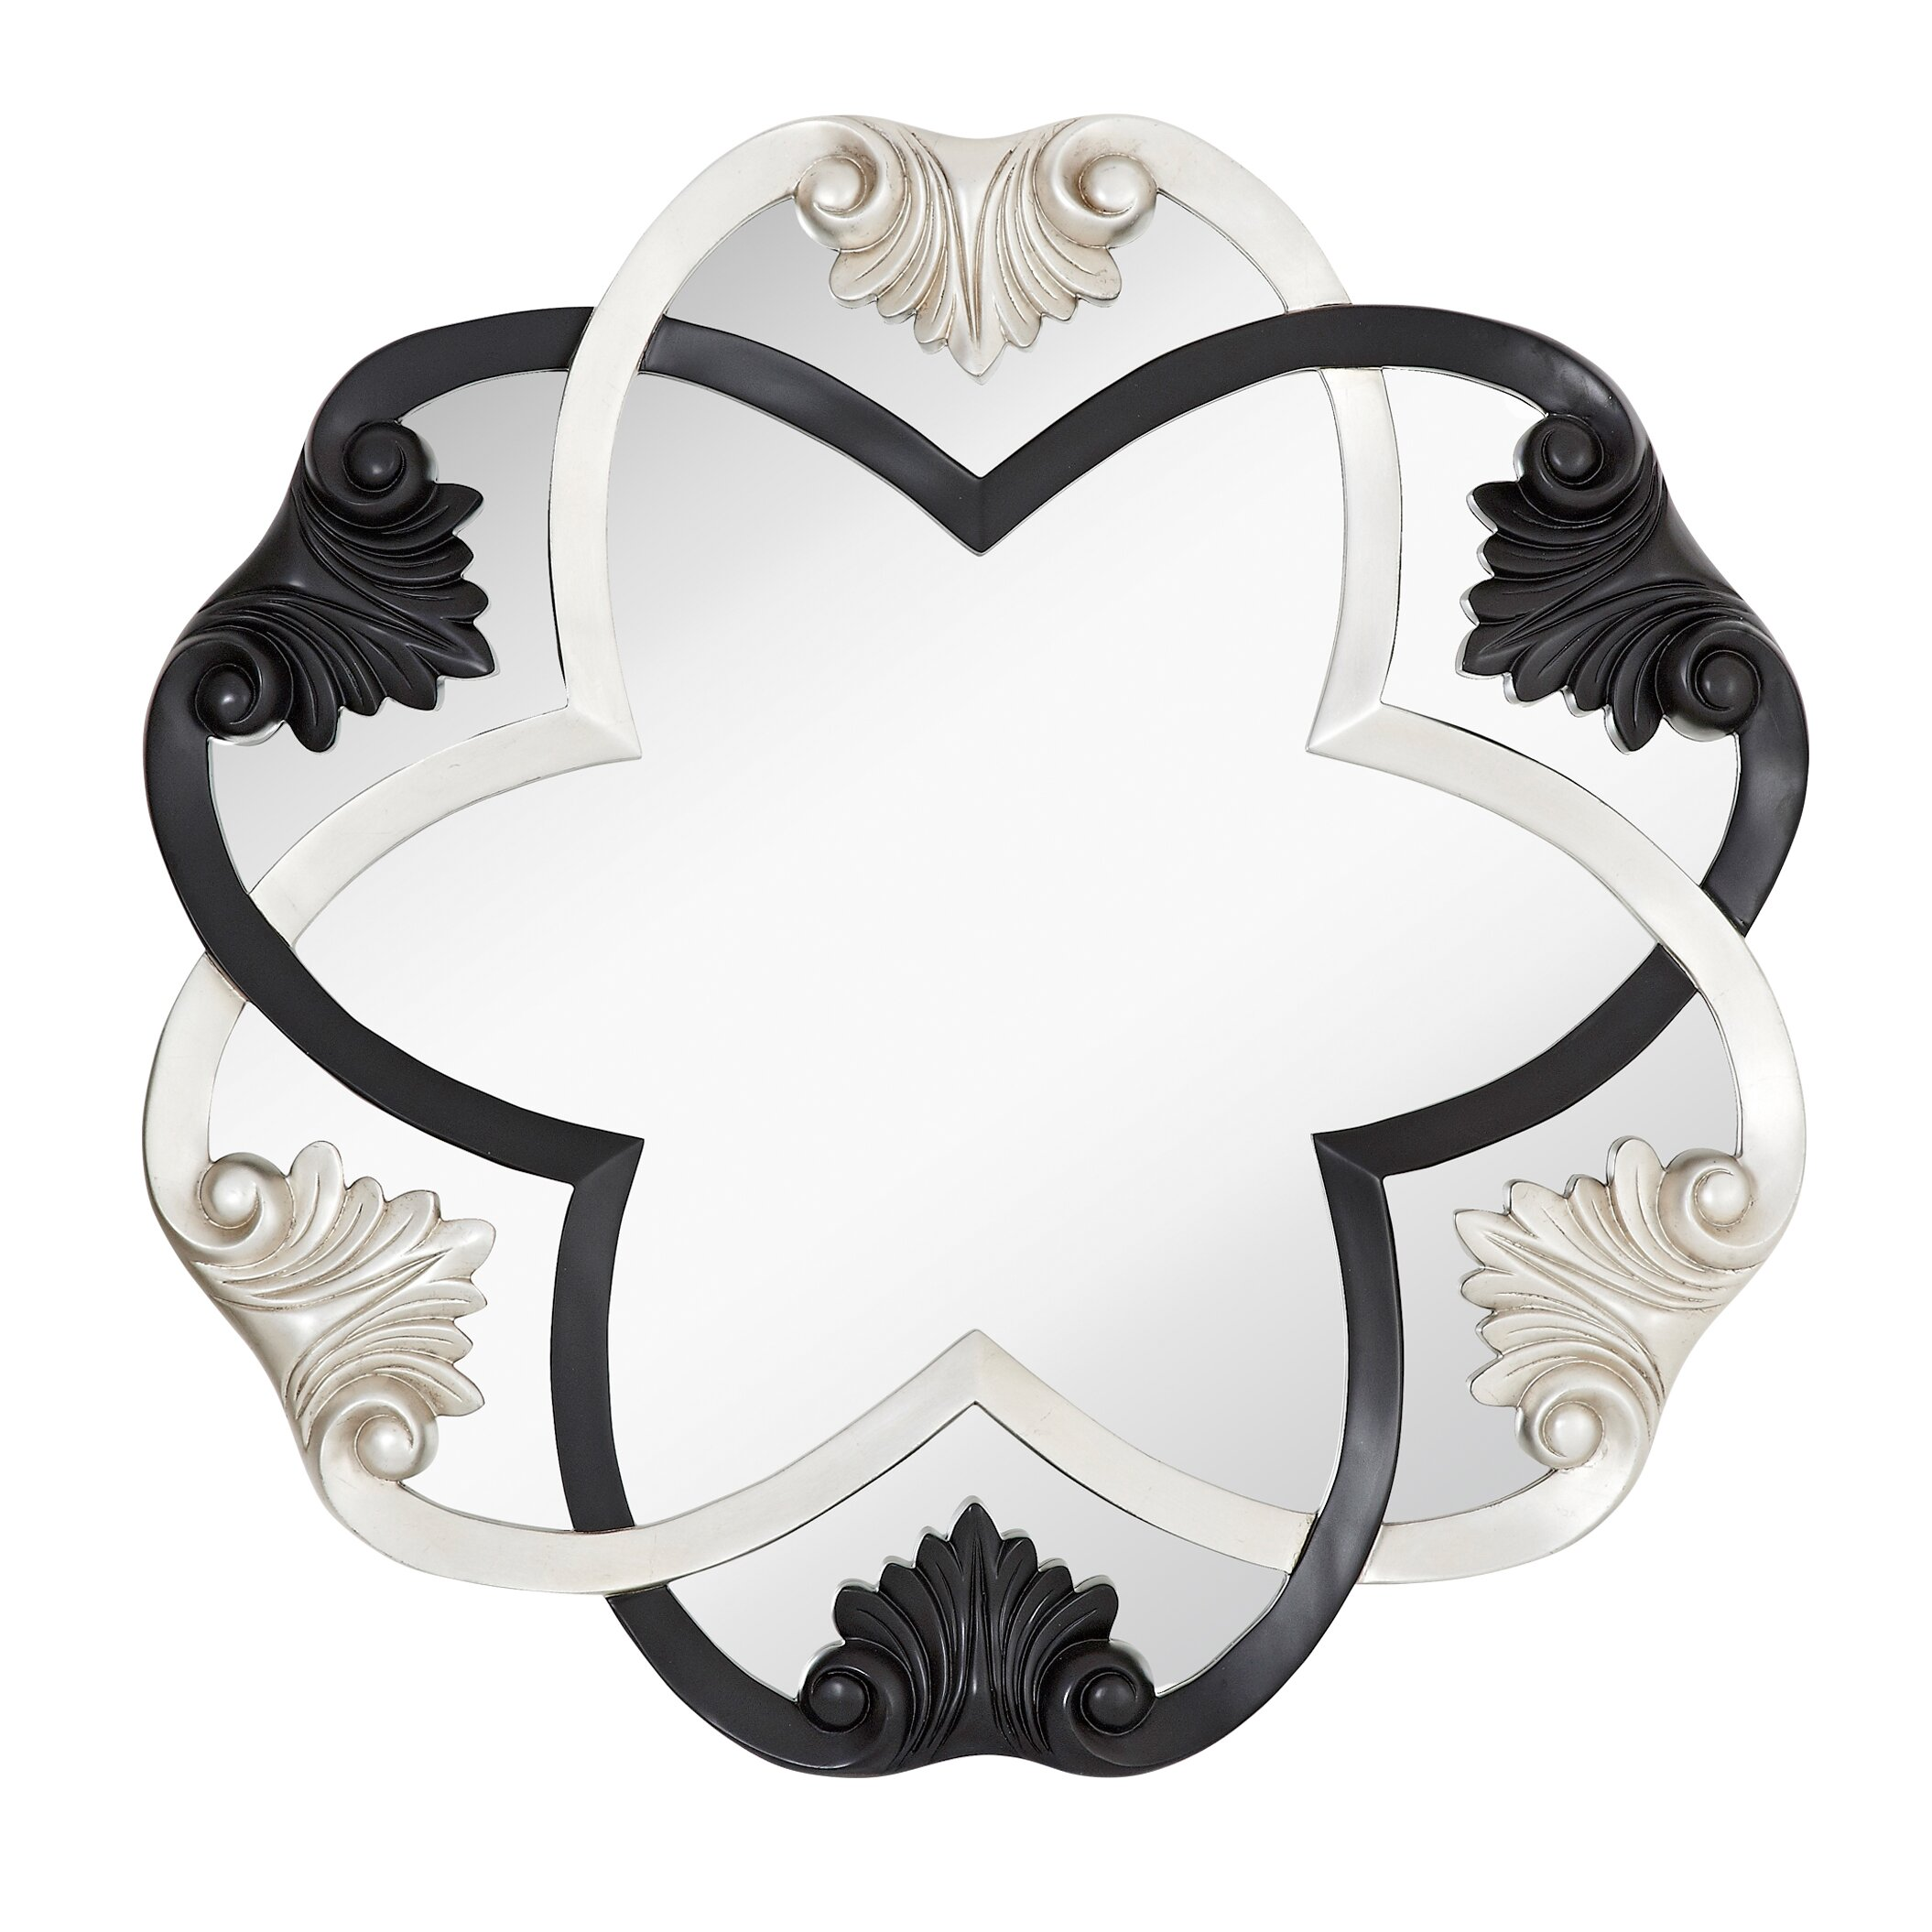 Silver Leaf Decoration Majestic Mirror Glamourous Black And Silver Leaf Circular